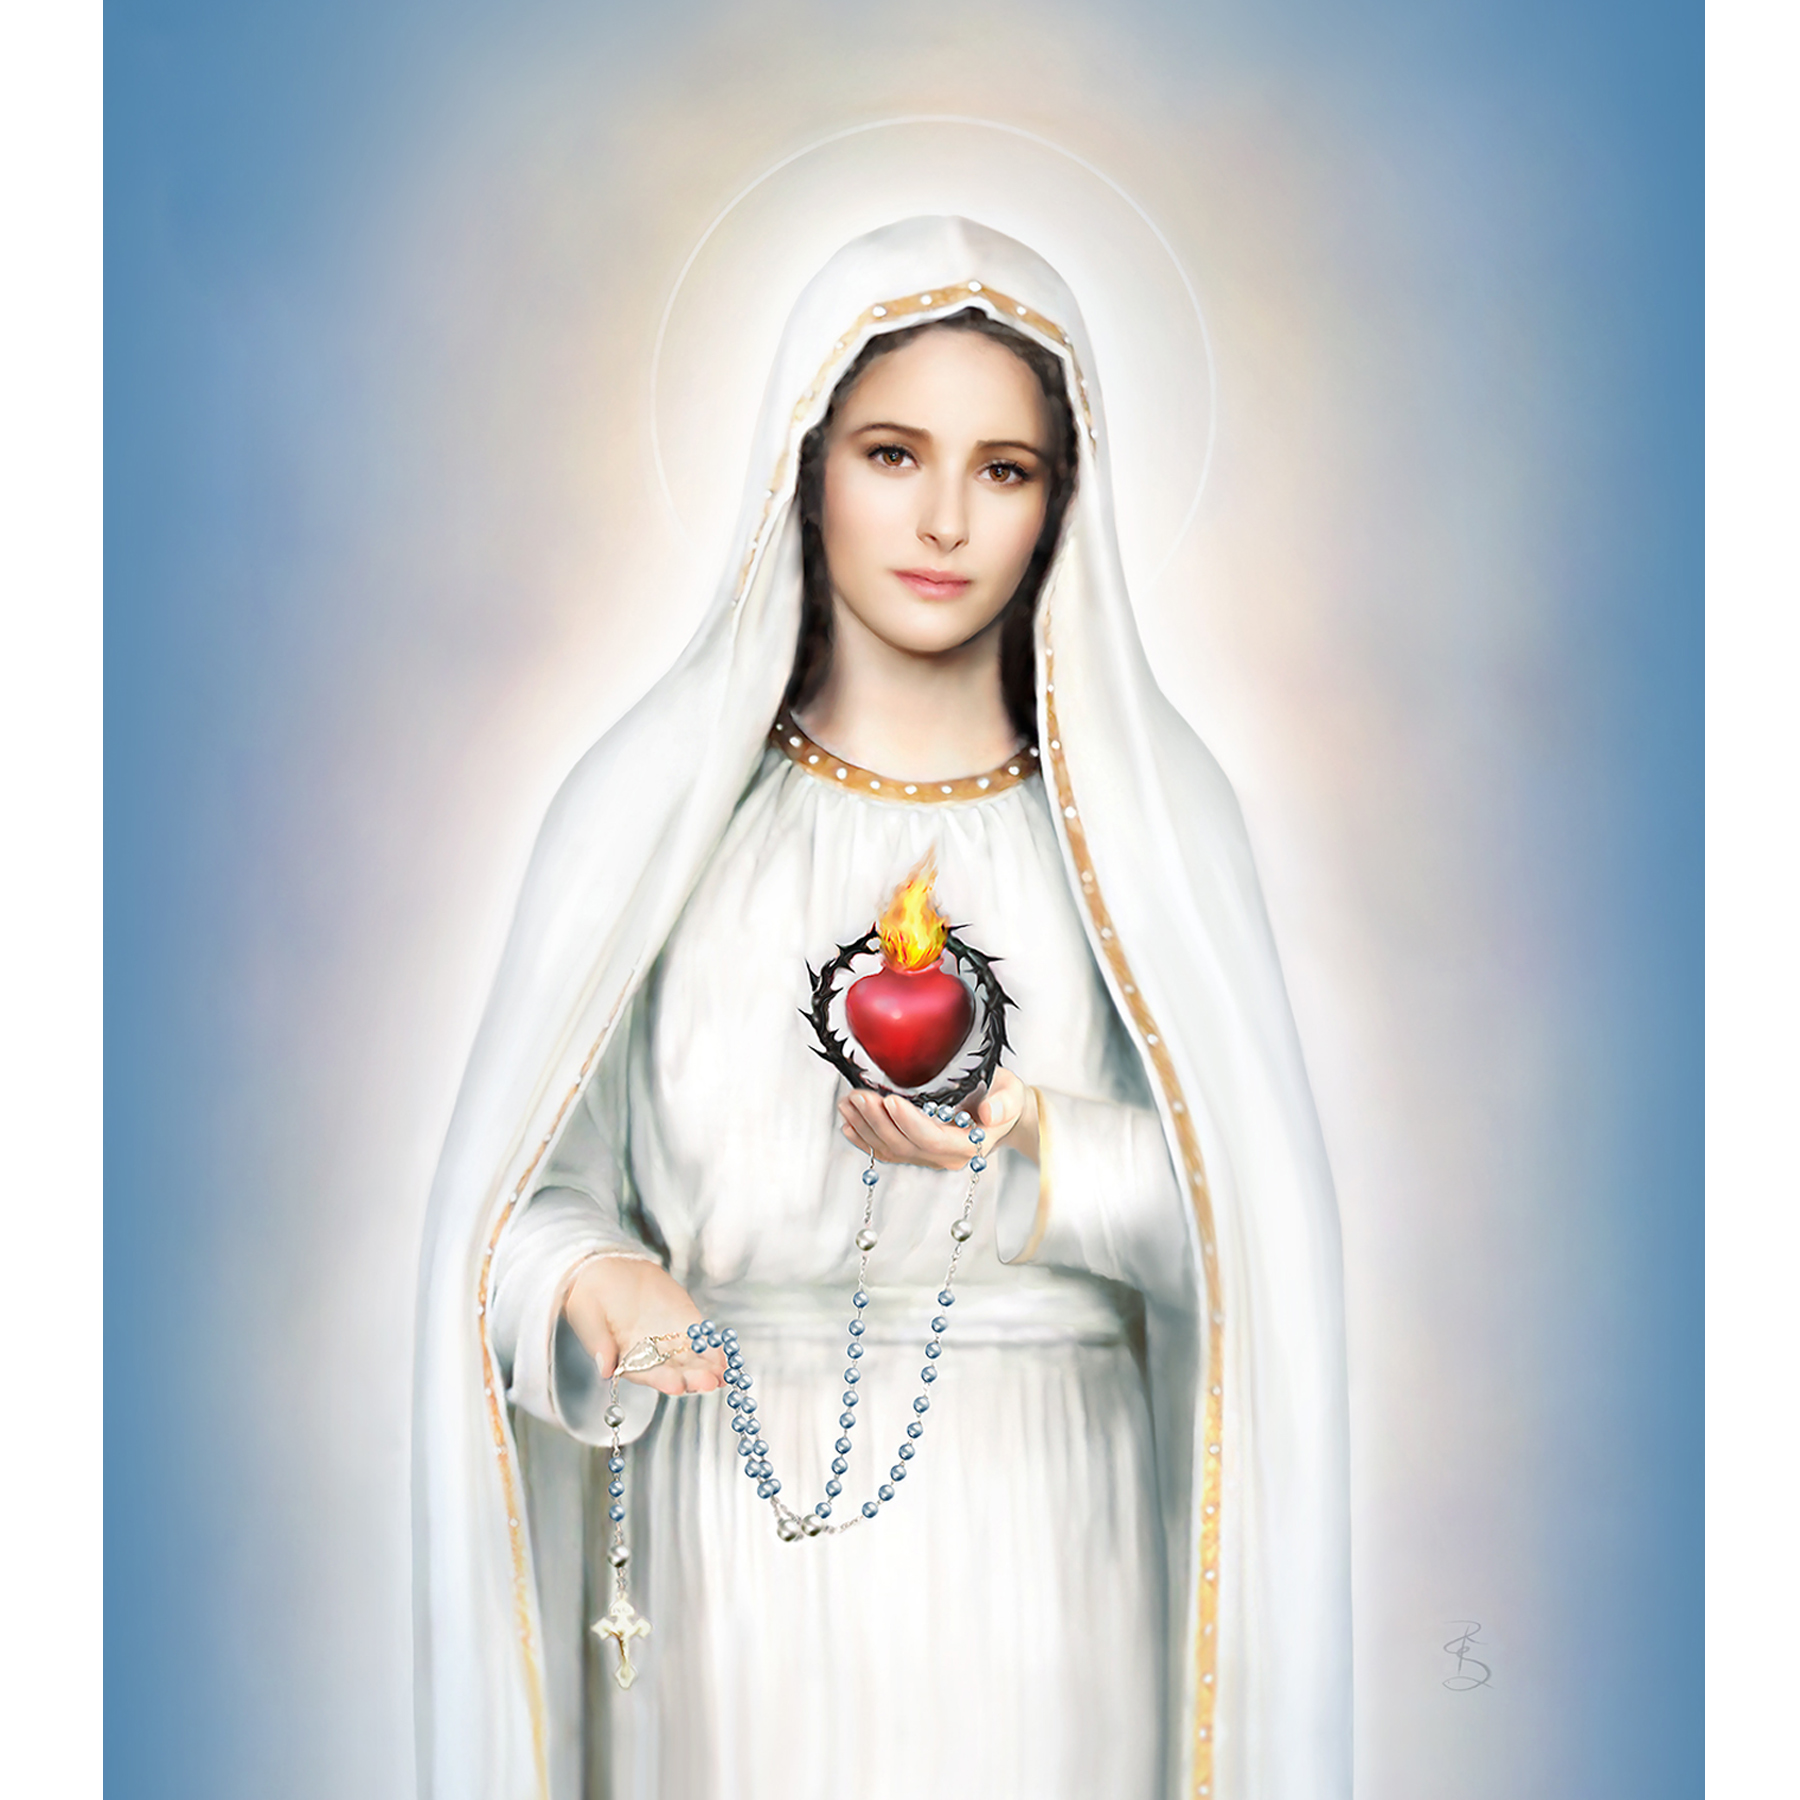 Our Lady of Fatima, Immaculate Heart of Mary